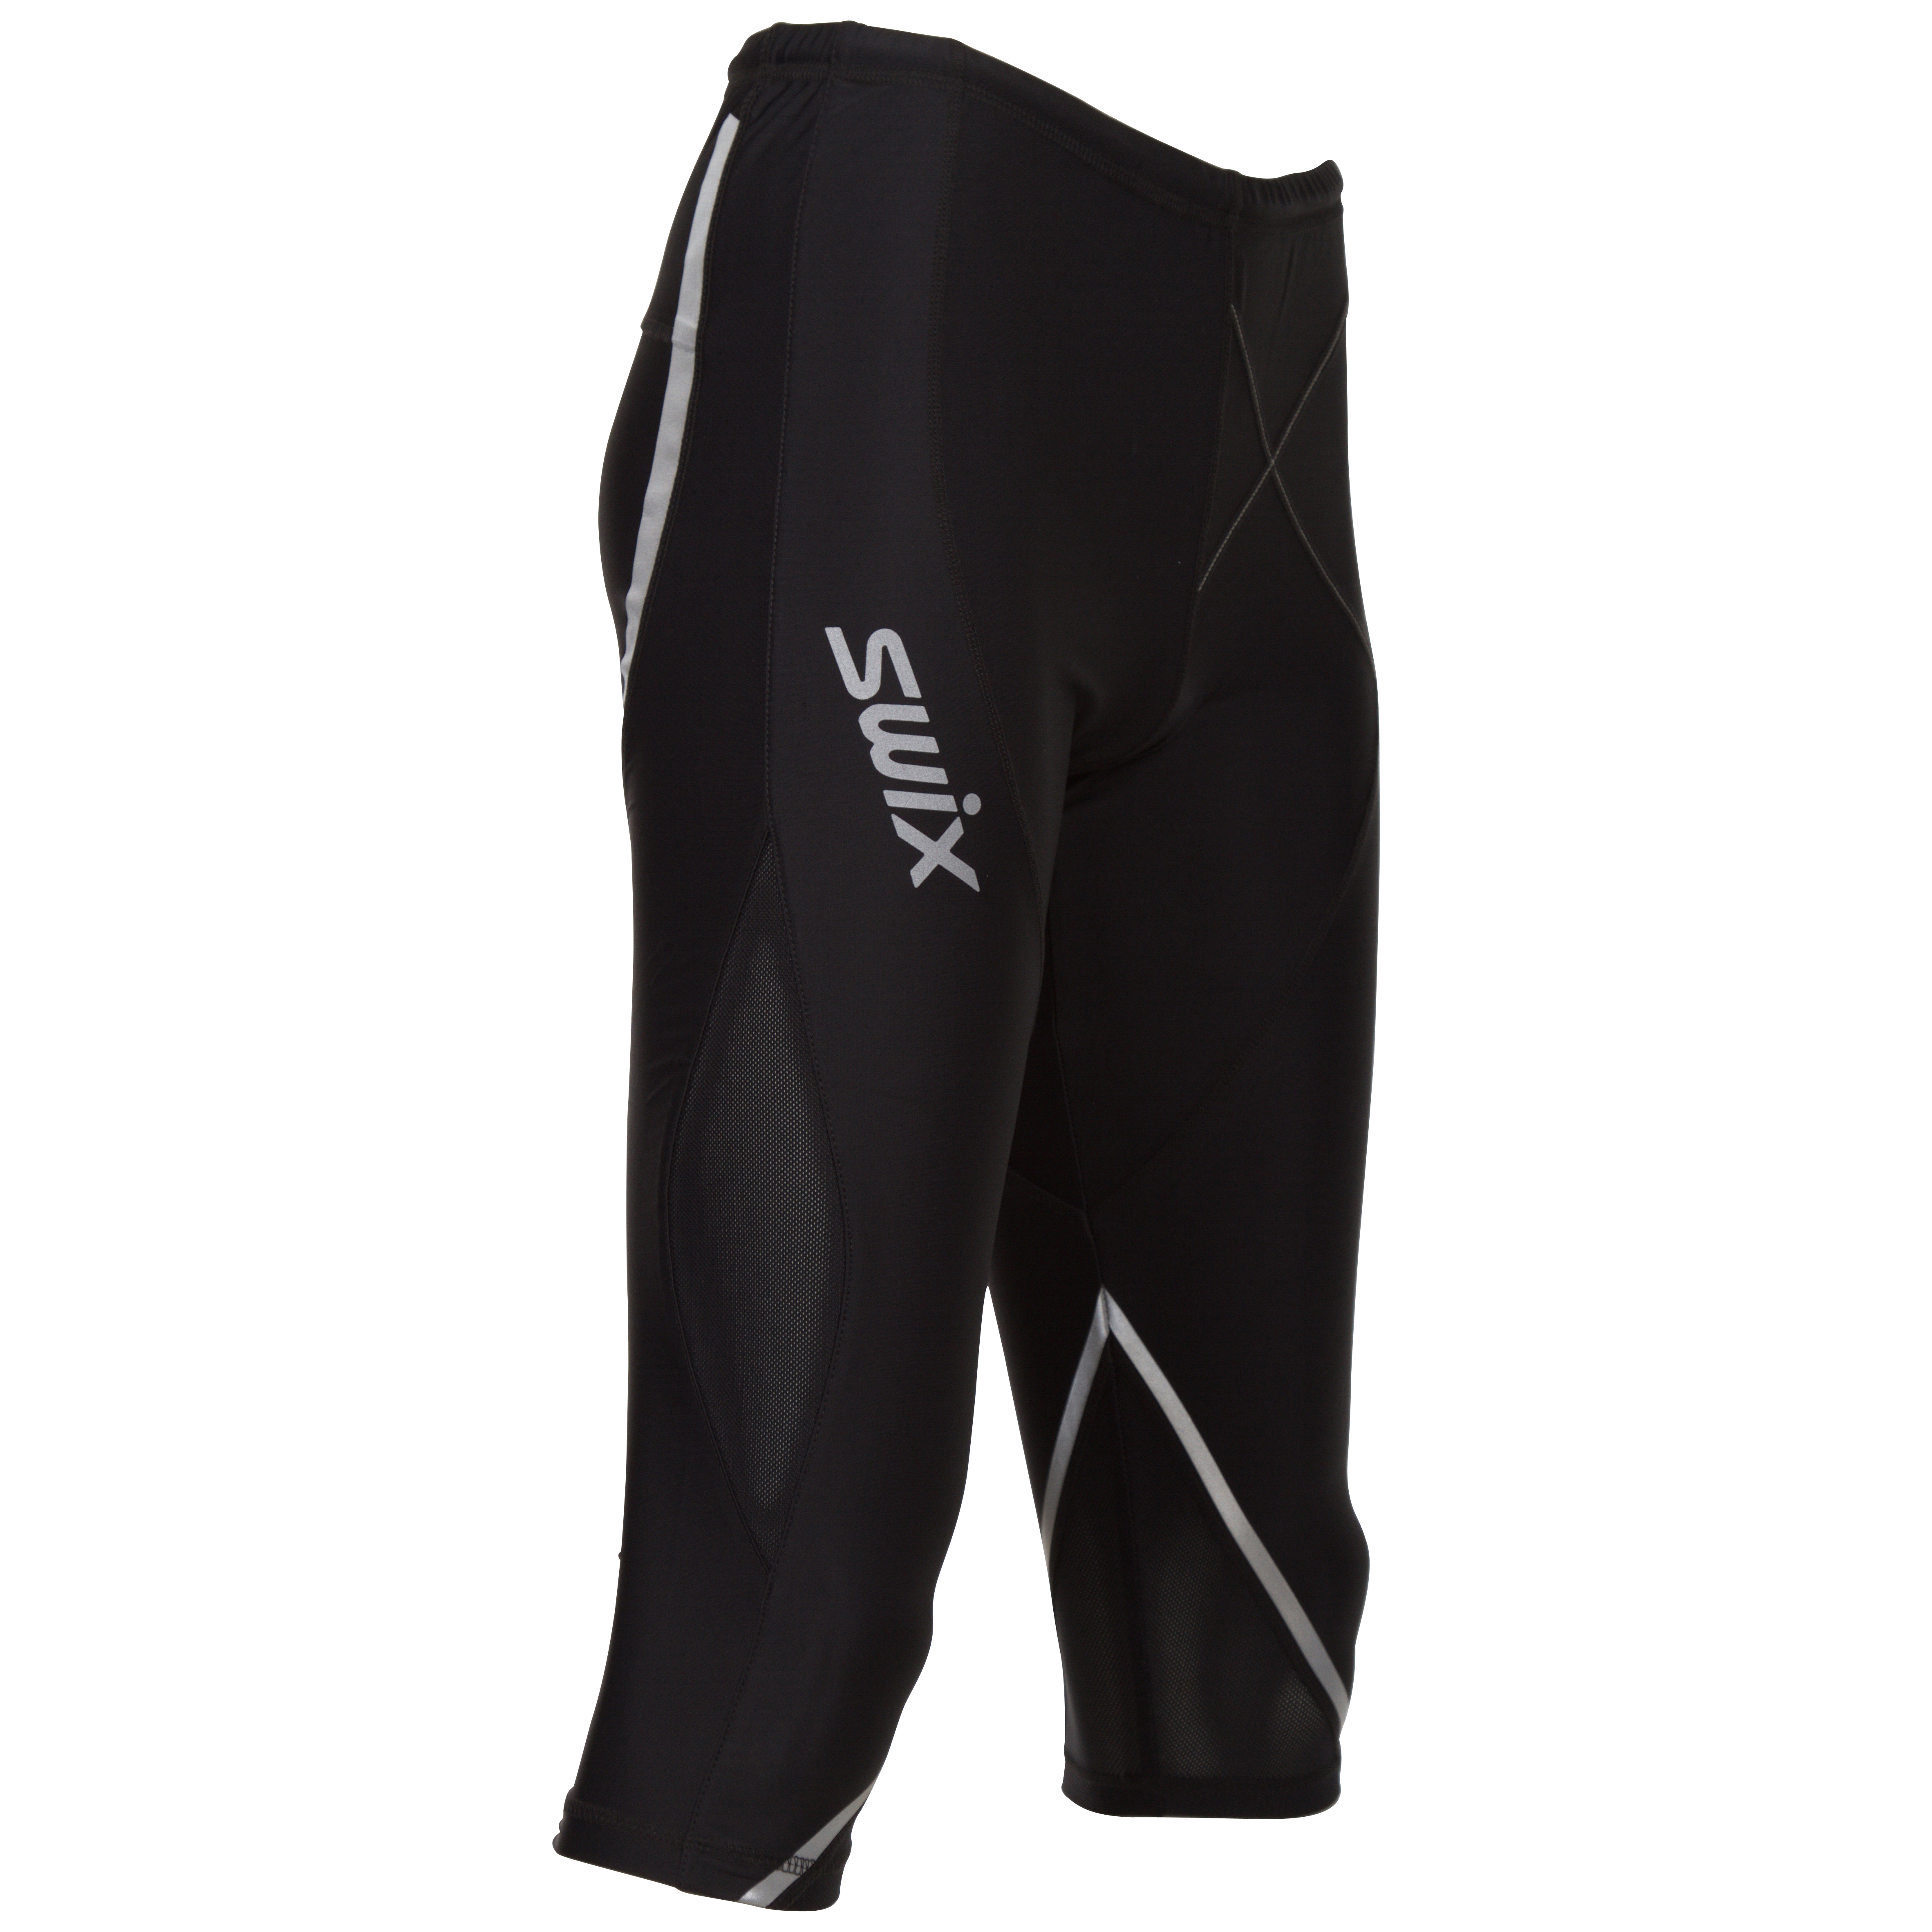 SWIX O2 TIGHT 3/4 LONG WOMEN Black 32206_10000